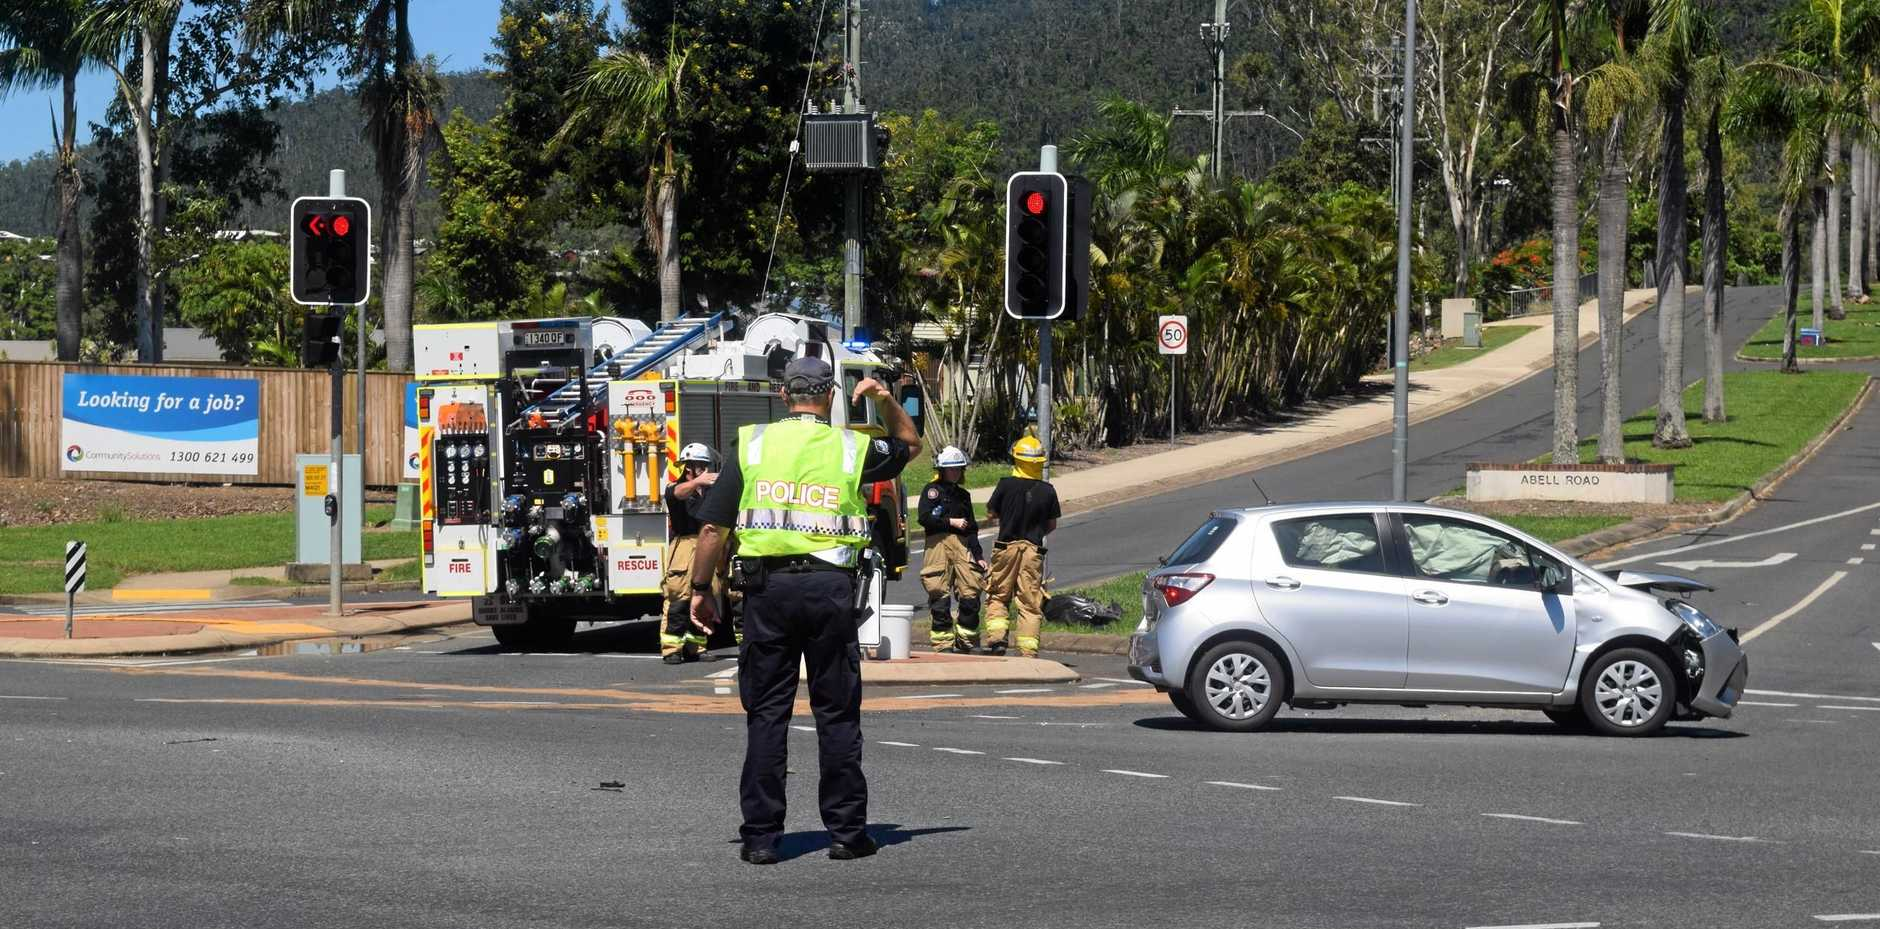 Collision on the corner of Shute Harbour road and Abell road, on Saturday February 10 2018.